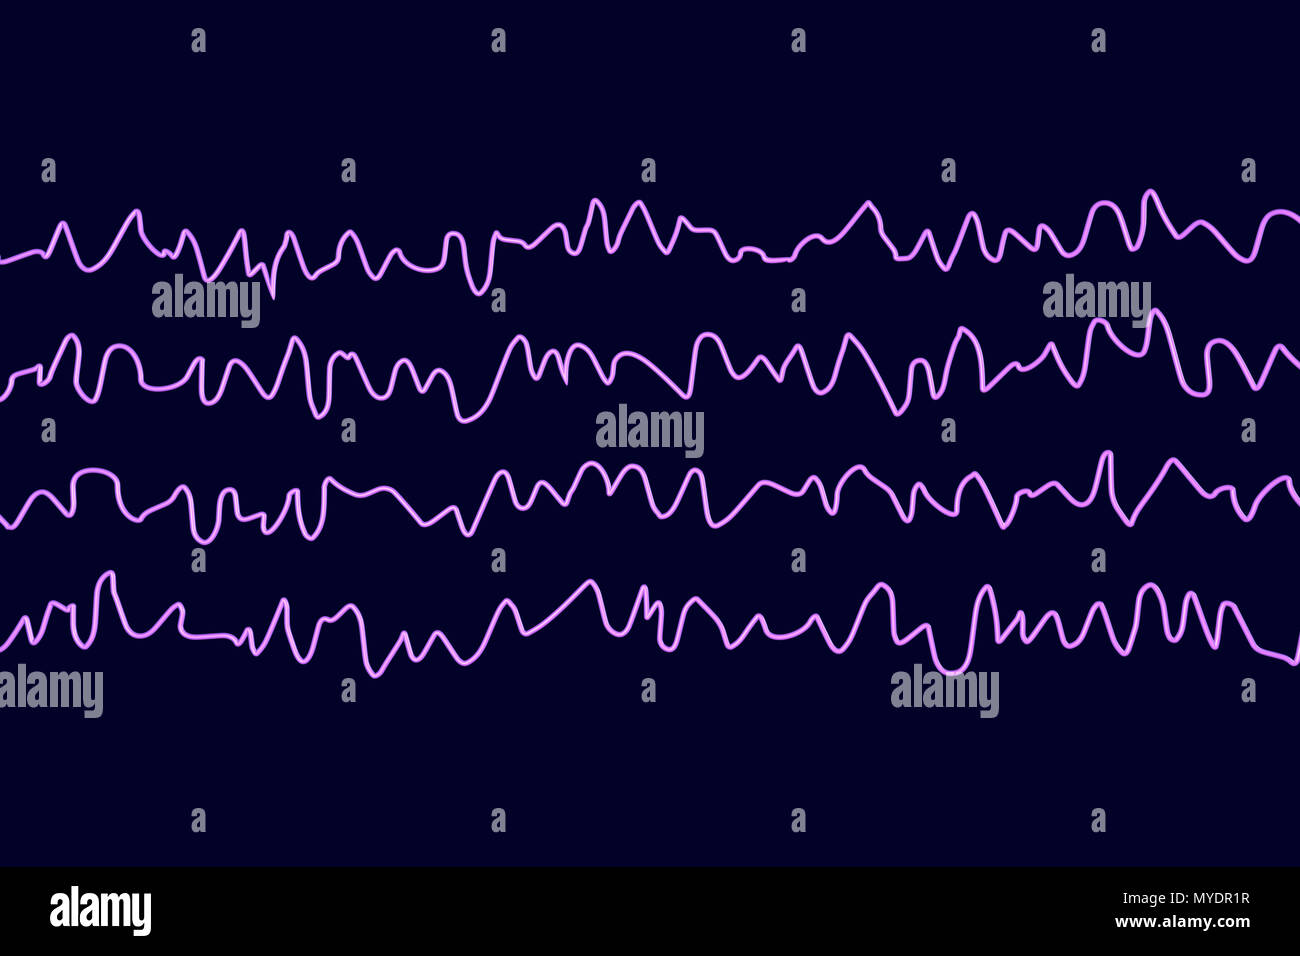 Brain waves in awake state during rest, computer illustration. An electroencephalogram (EEG) measures electrical activity in the brain using electrodes attached to the scalp. Various disorders can be diagnosed by analysing EEG results. - Stock Image